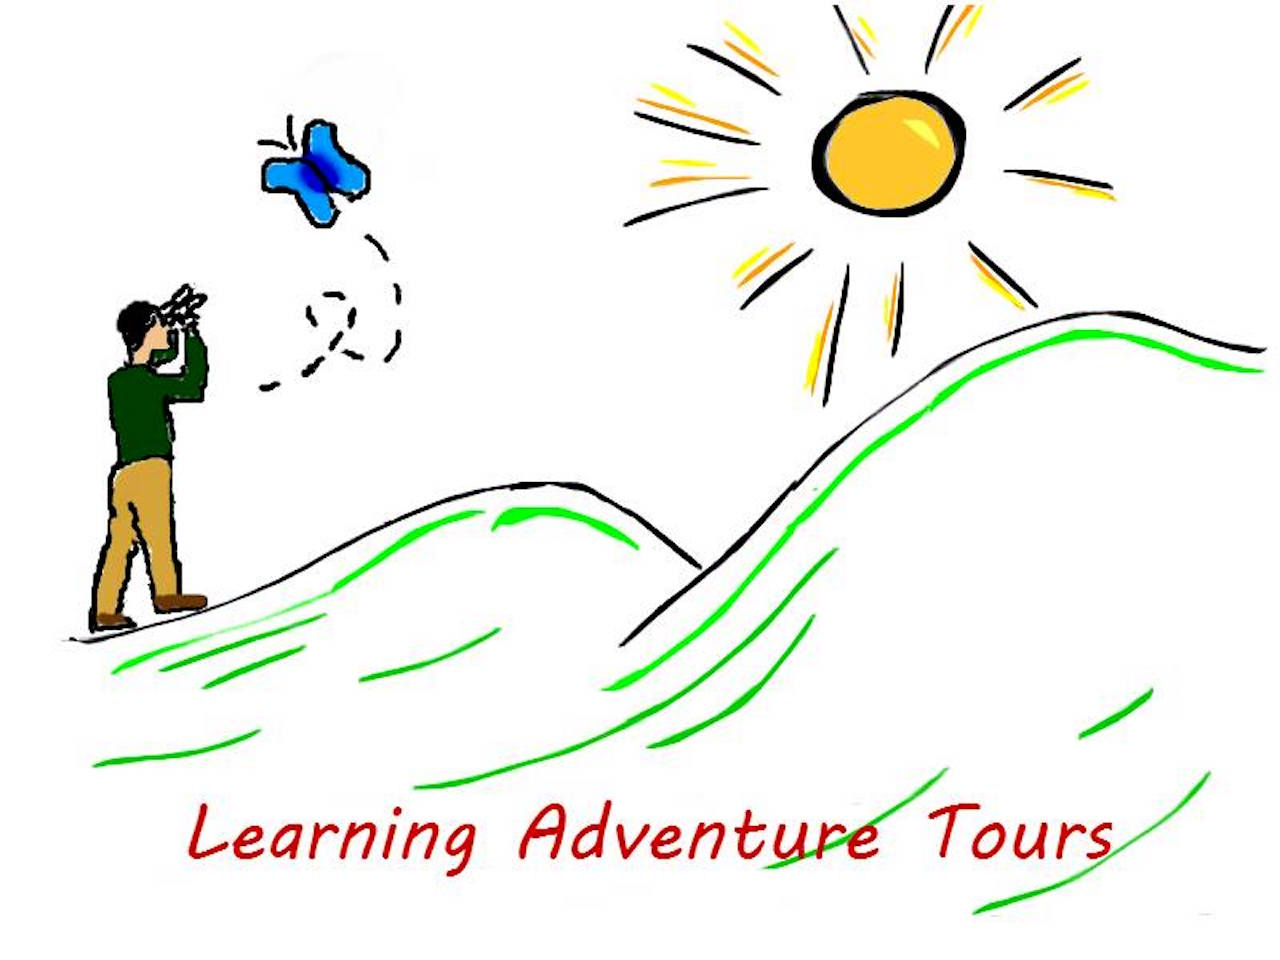 Learning Adventure Tours